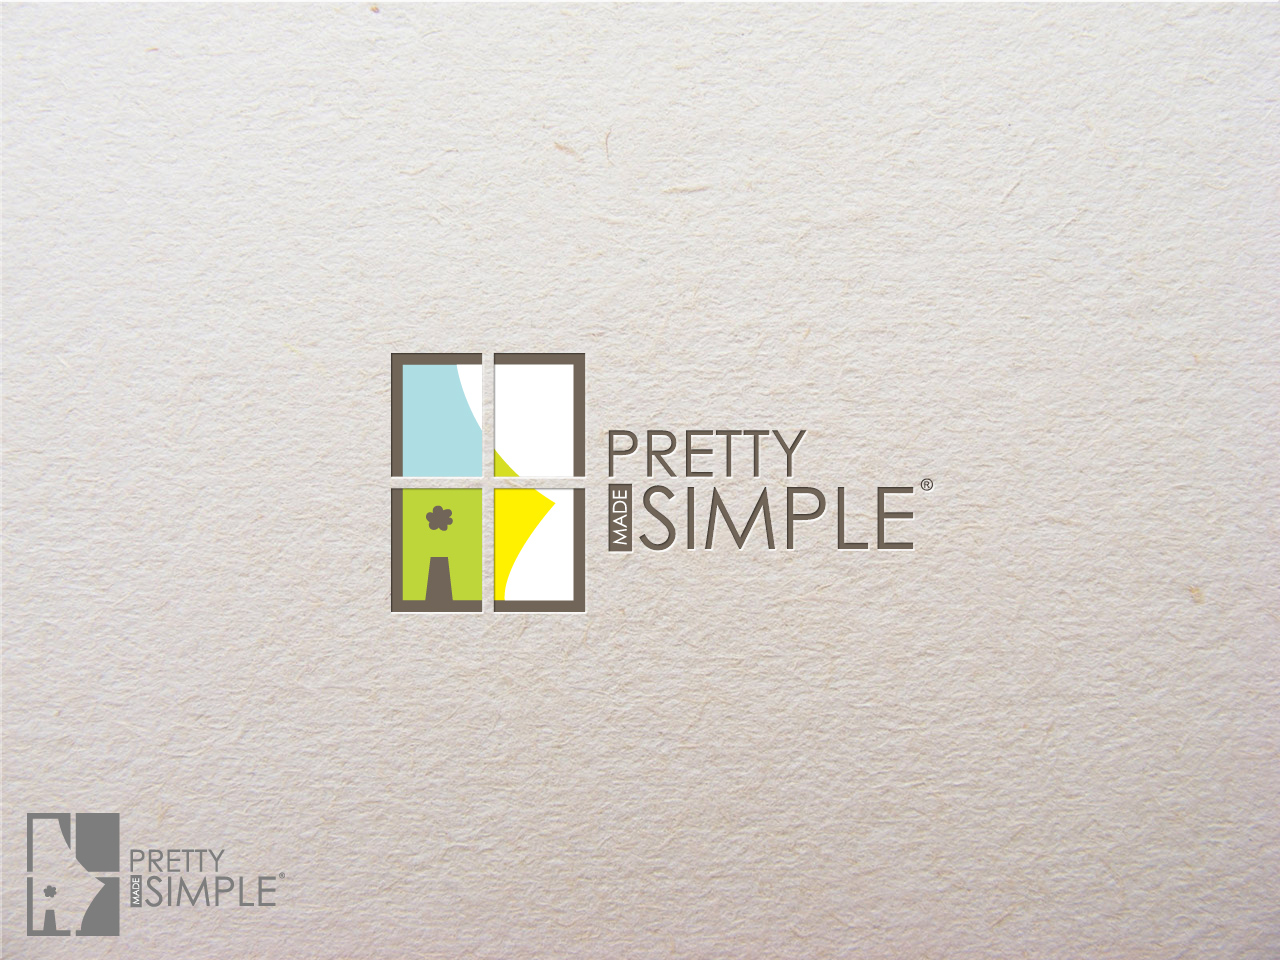 Logo Design by jpbituin - Entry No. 60 in the Logo Design Contest Pretty Made Simple Logo Design.